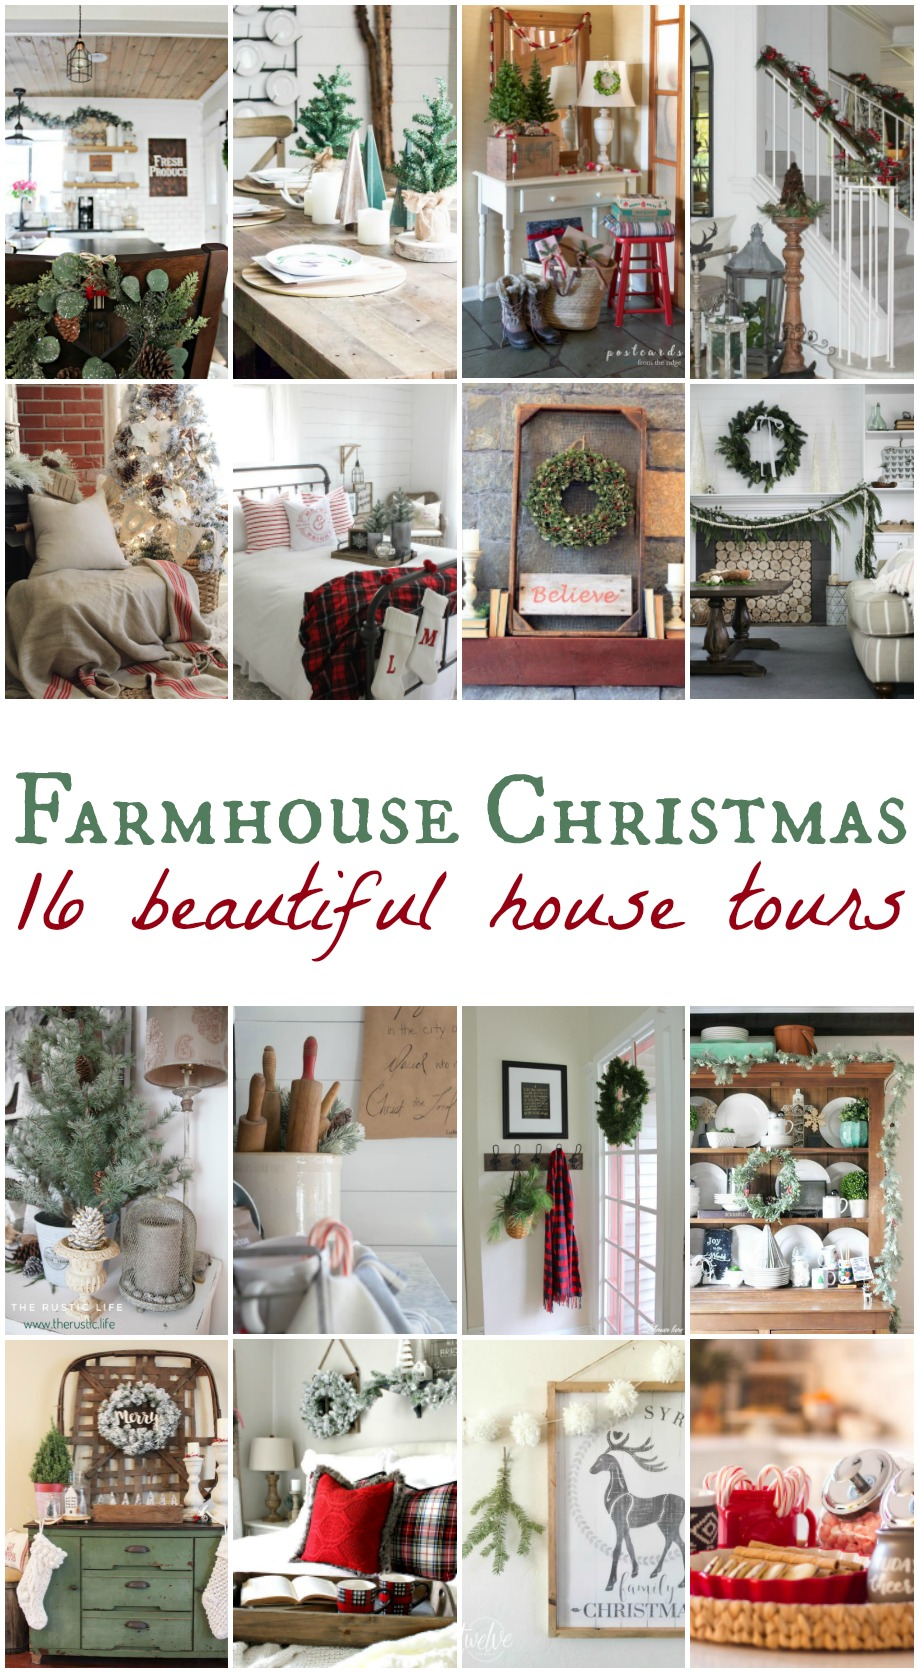 farmhouse-christmas-house-tours